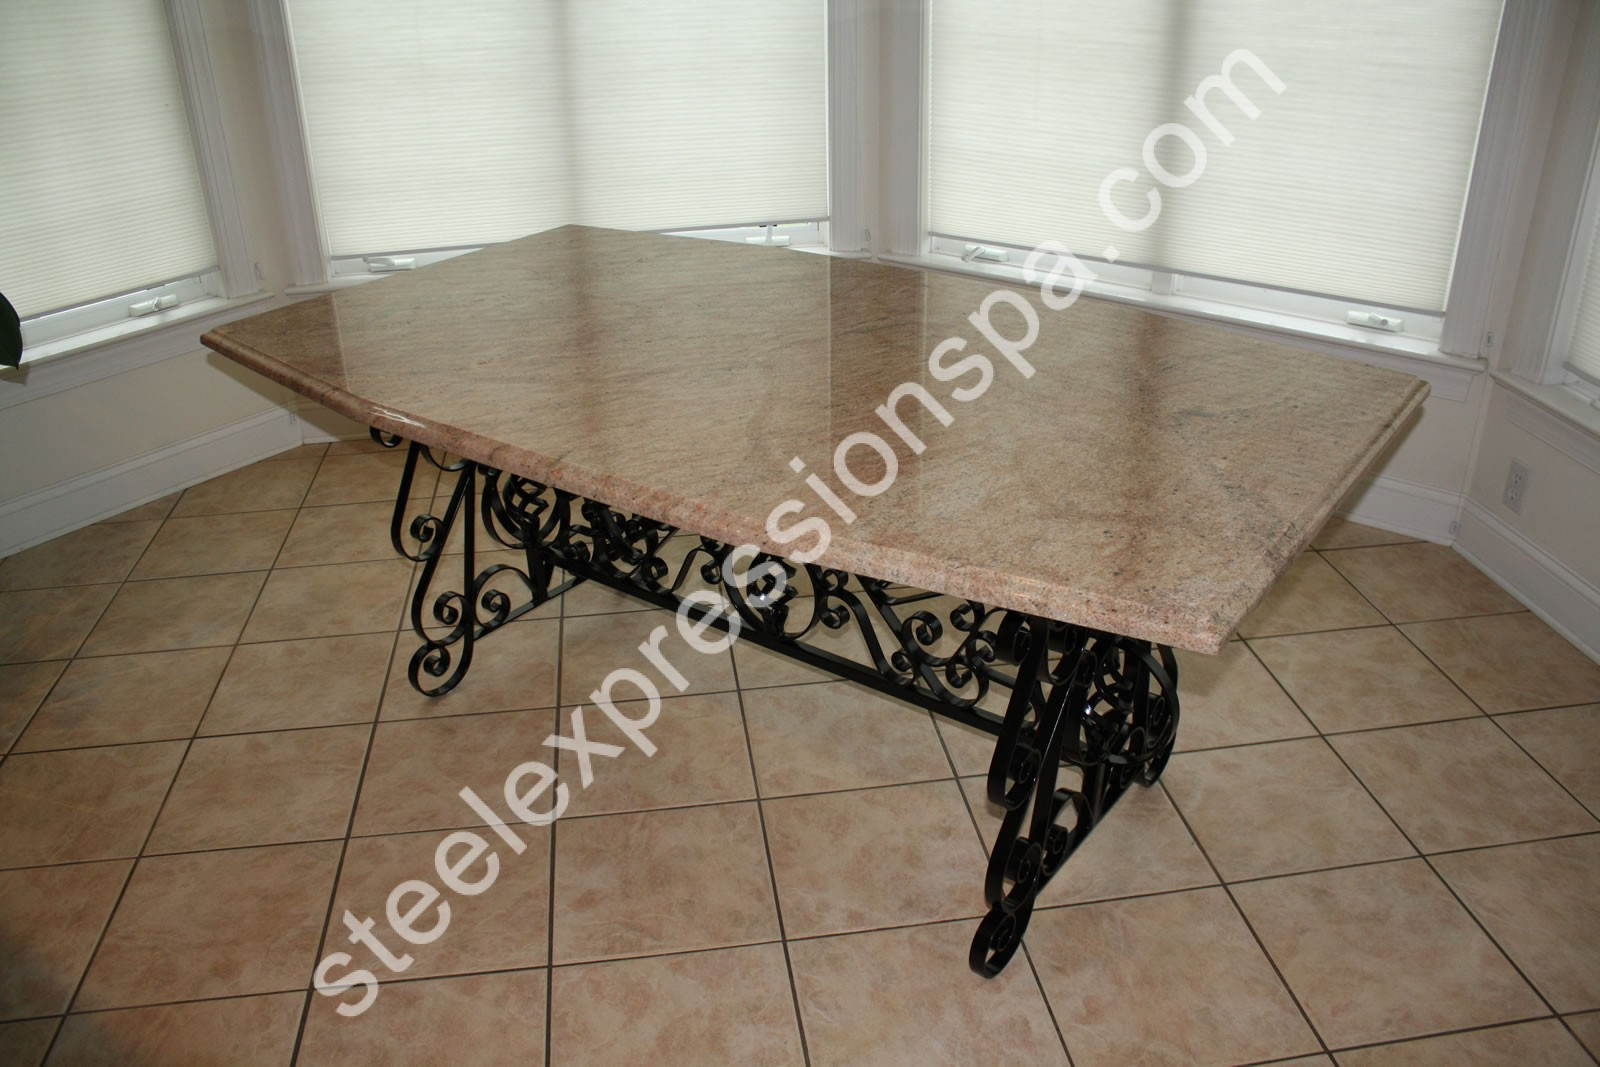 Marvelous Wrought Iron Tables Wrought Iron Tables Steel Lancaster Pa Wrought Iron Furniture Brands Wrought Iron Furniture Set houzz 01 Wrought Iron Furniture